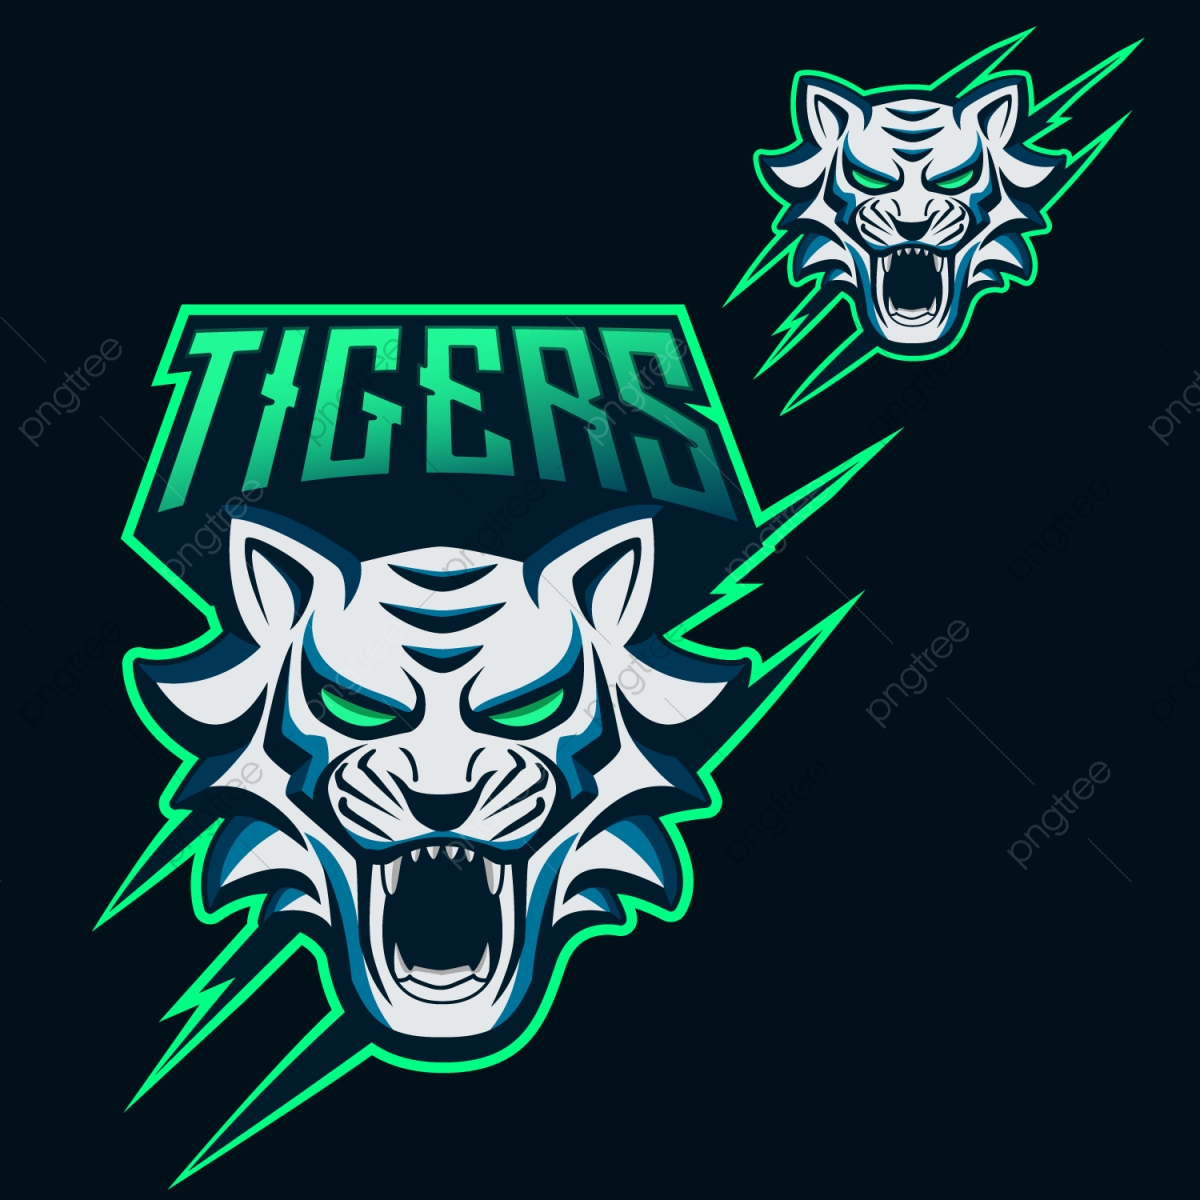 Tigers Esports Logo For Mascotand Twitch Free Logo Design Template Mascot Logo Team Png And Vector With Transparent Background For Free Download